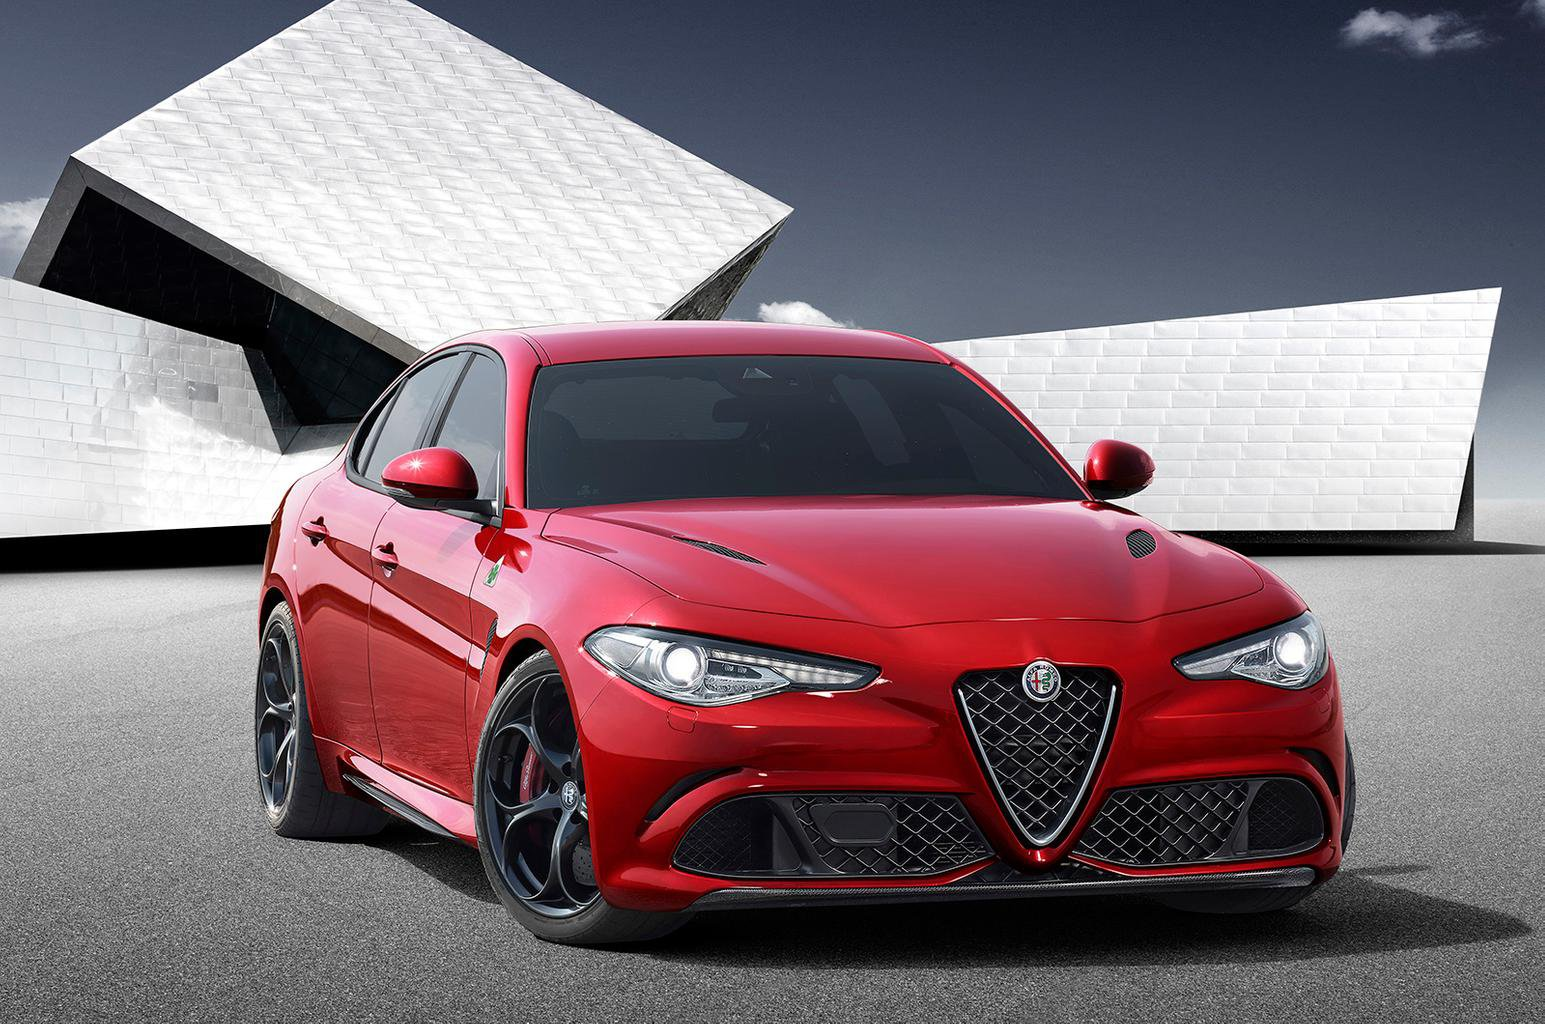 All-new 2016 Alfa Romeo Giulia revealed - official pictures and details